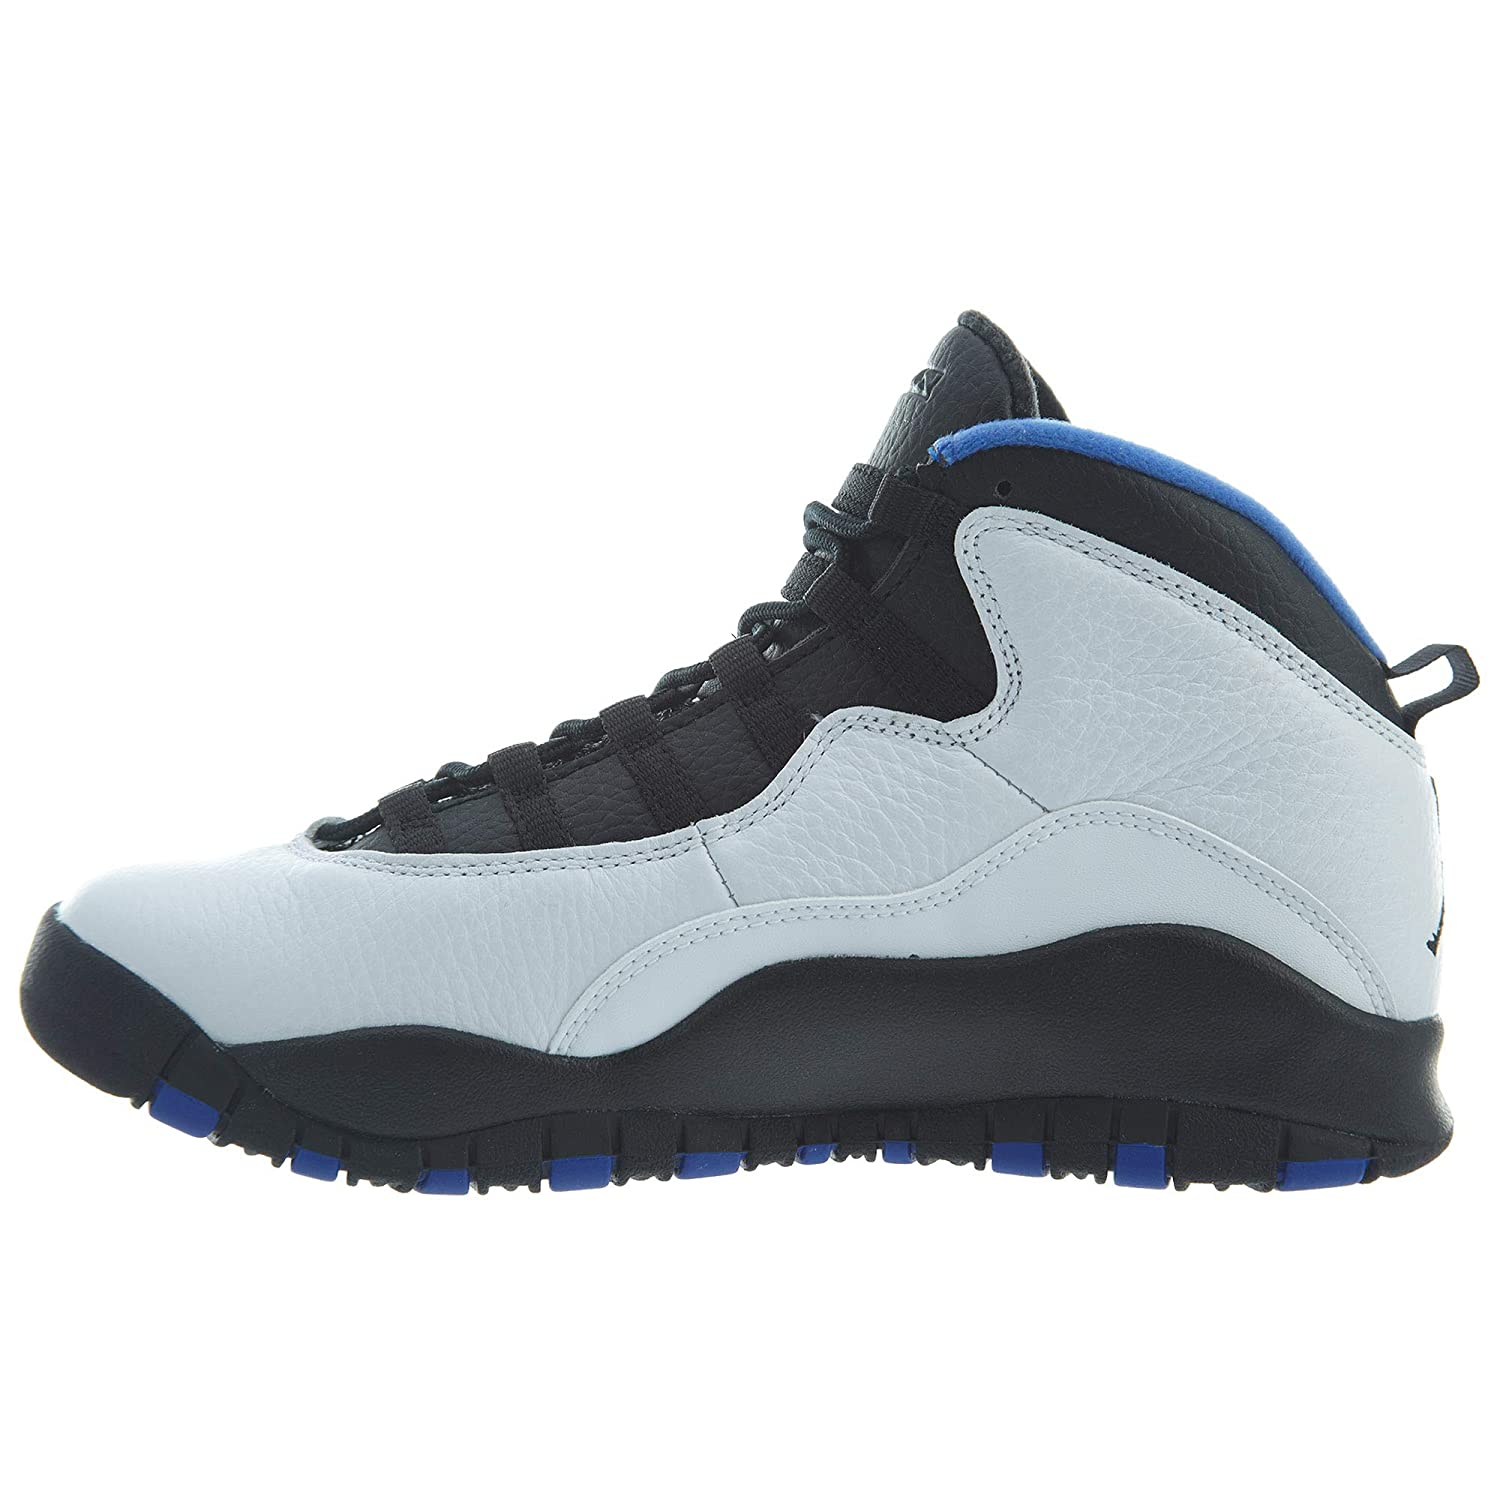 a843ce0870 Jordan Kids' Nike Air 10 Retro Gs